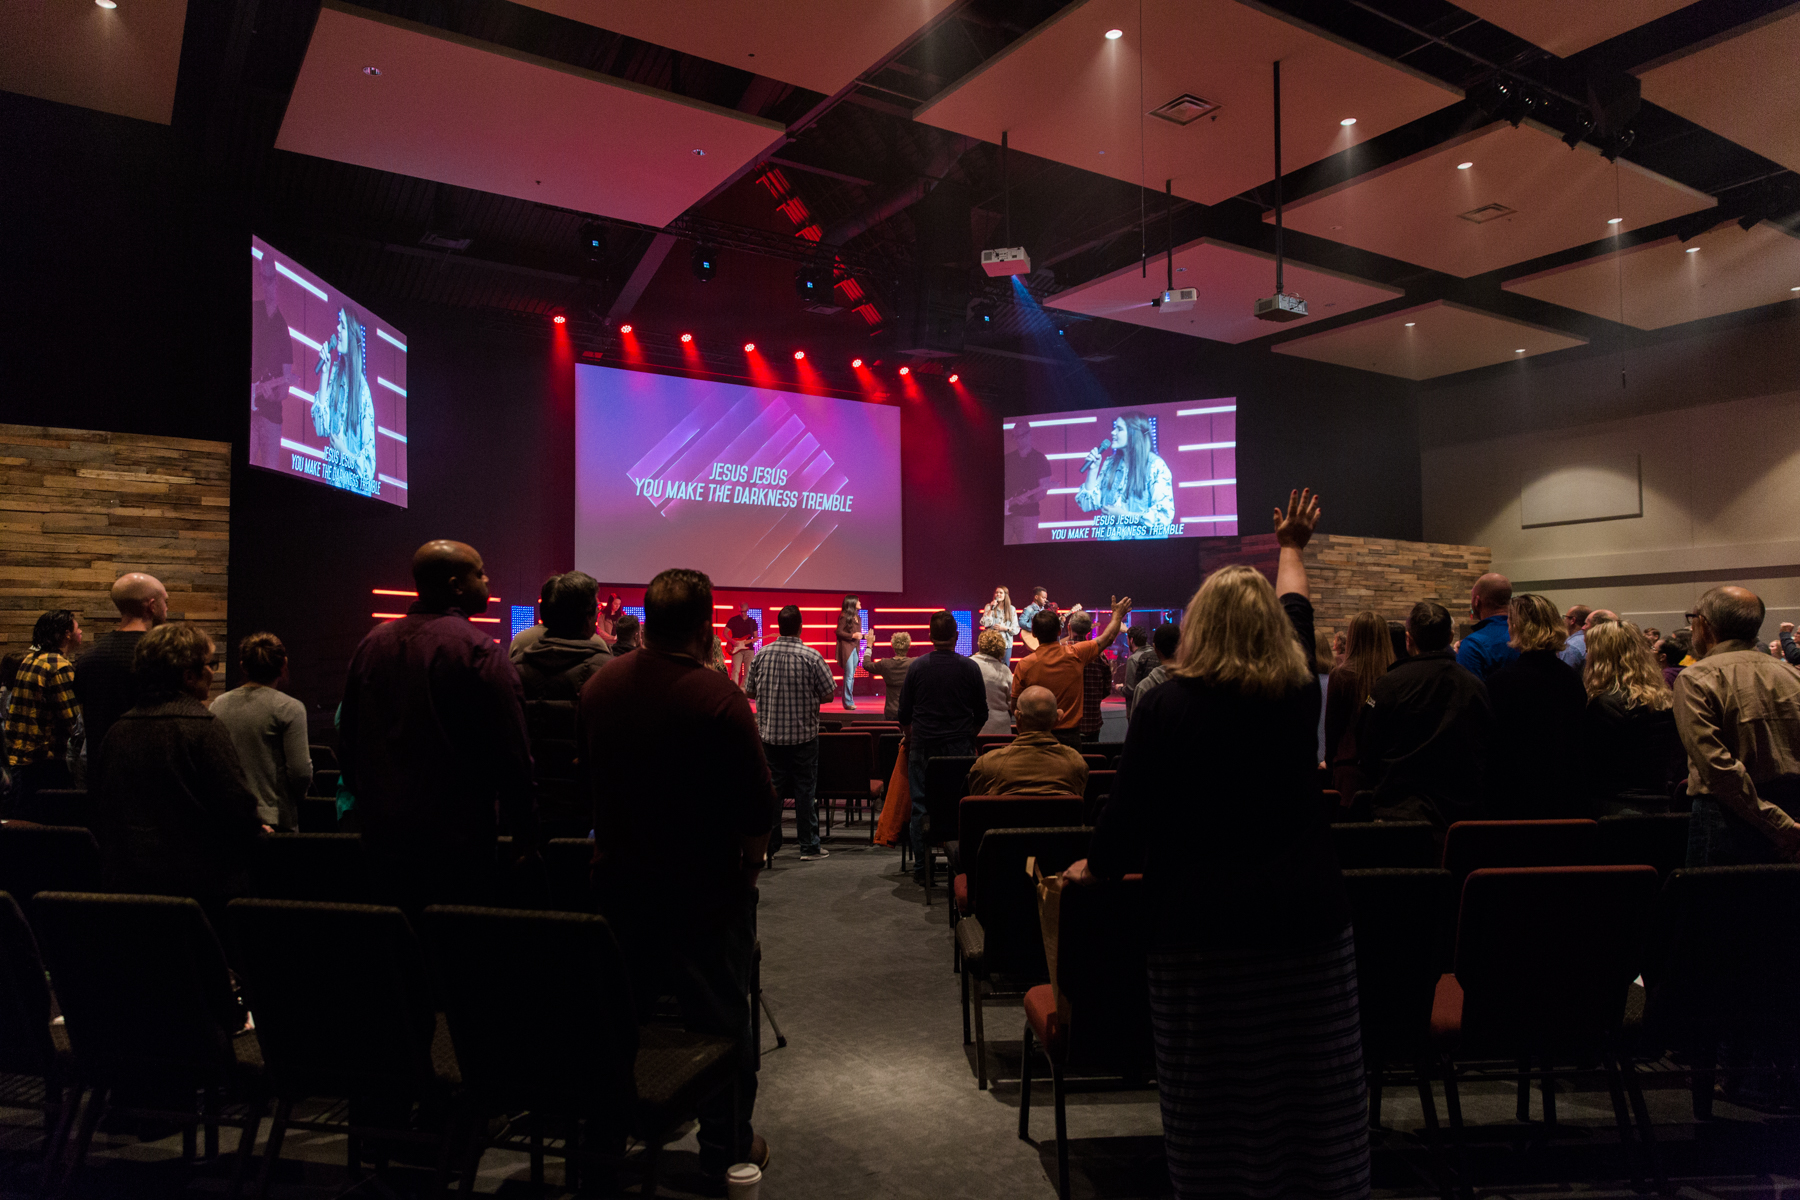 Evergreen's band leads worship during their 9am service.